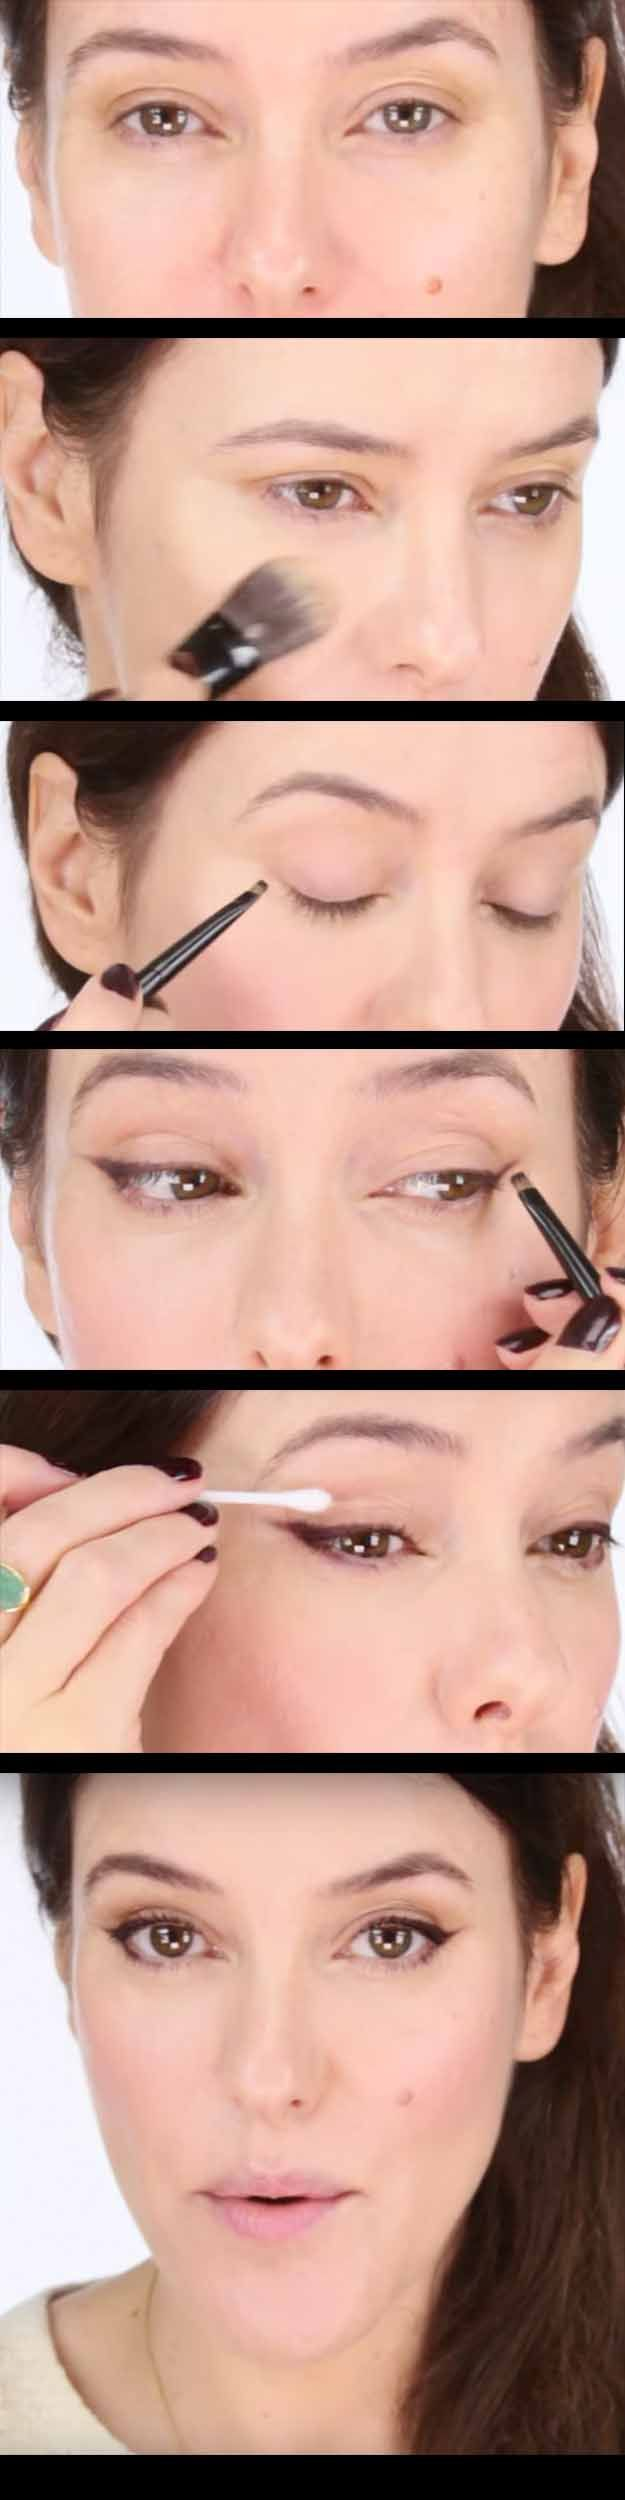 25 Must Know Eyeliner Hacks -Easy Effortless Winged Liner Anyone Can Achieve -Winged Looks and Easy Makeup Tricks and Guides for Liquid Pencil and Gel Styles. Step by Step Tutorials with Pictures using Tape or a Spoon thegoddess.com/eyeliner-hacks